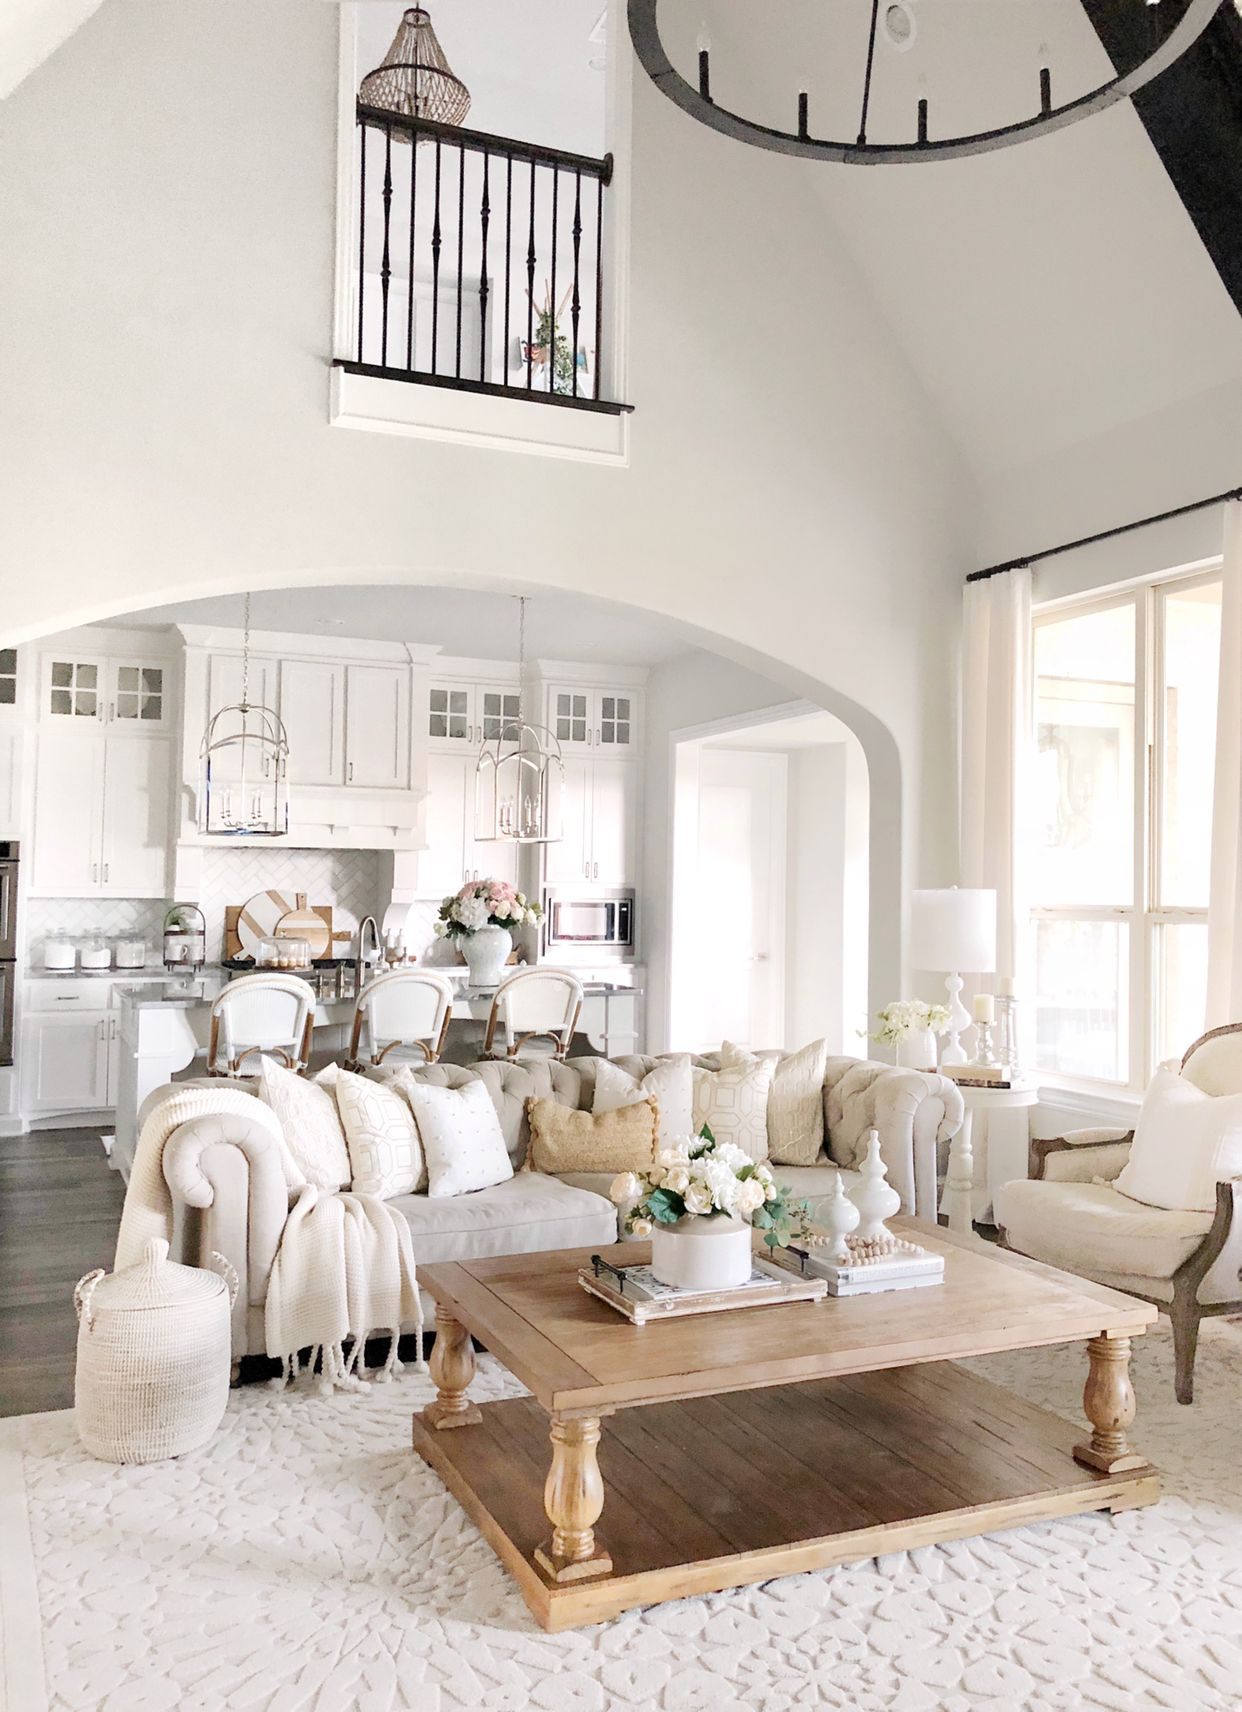 Kitchen And Living Room Updates Mytexashouse Farm House Living Room Home Home Living Room #updating #living #room #ideas